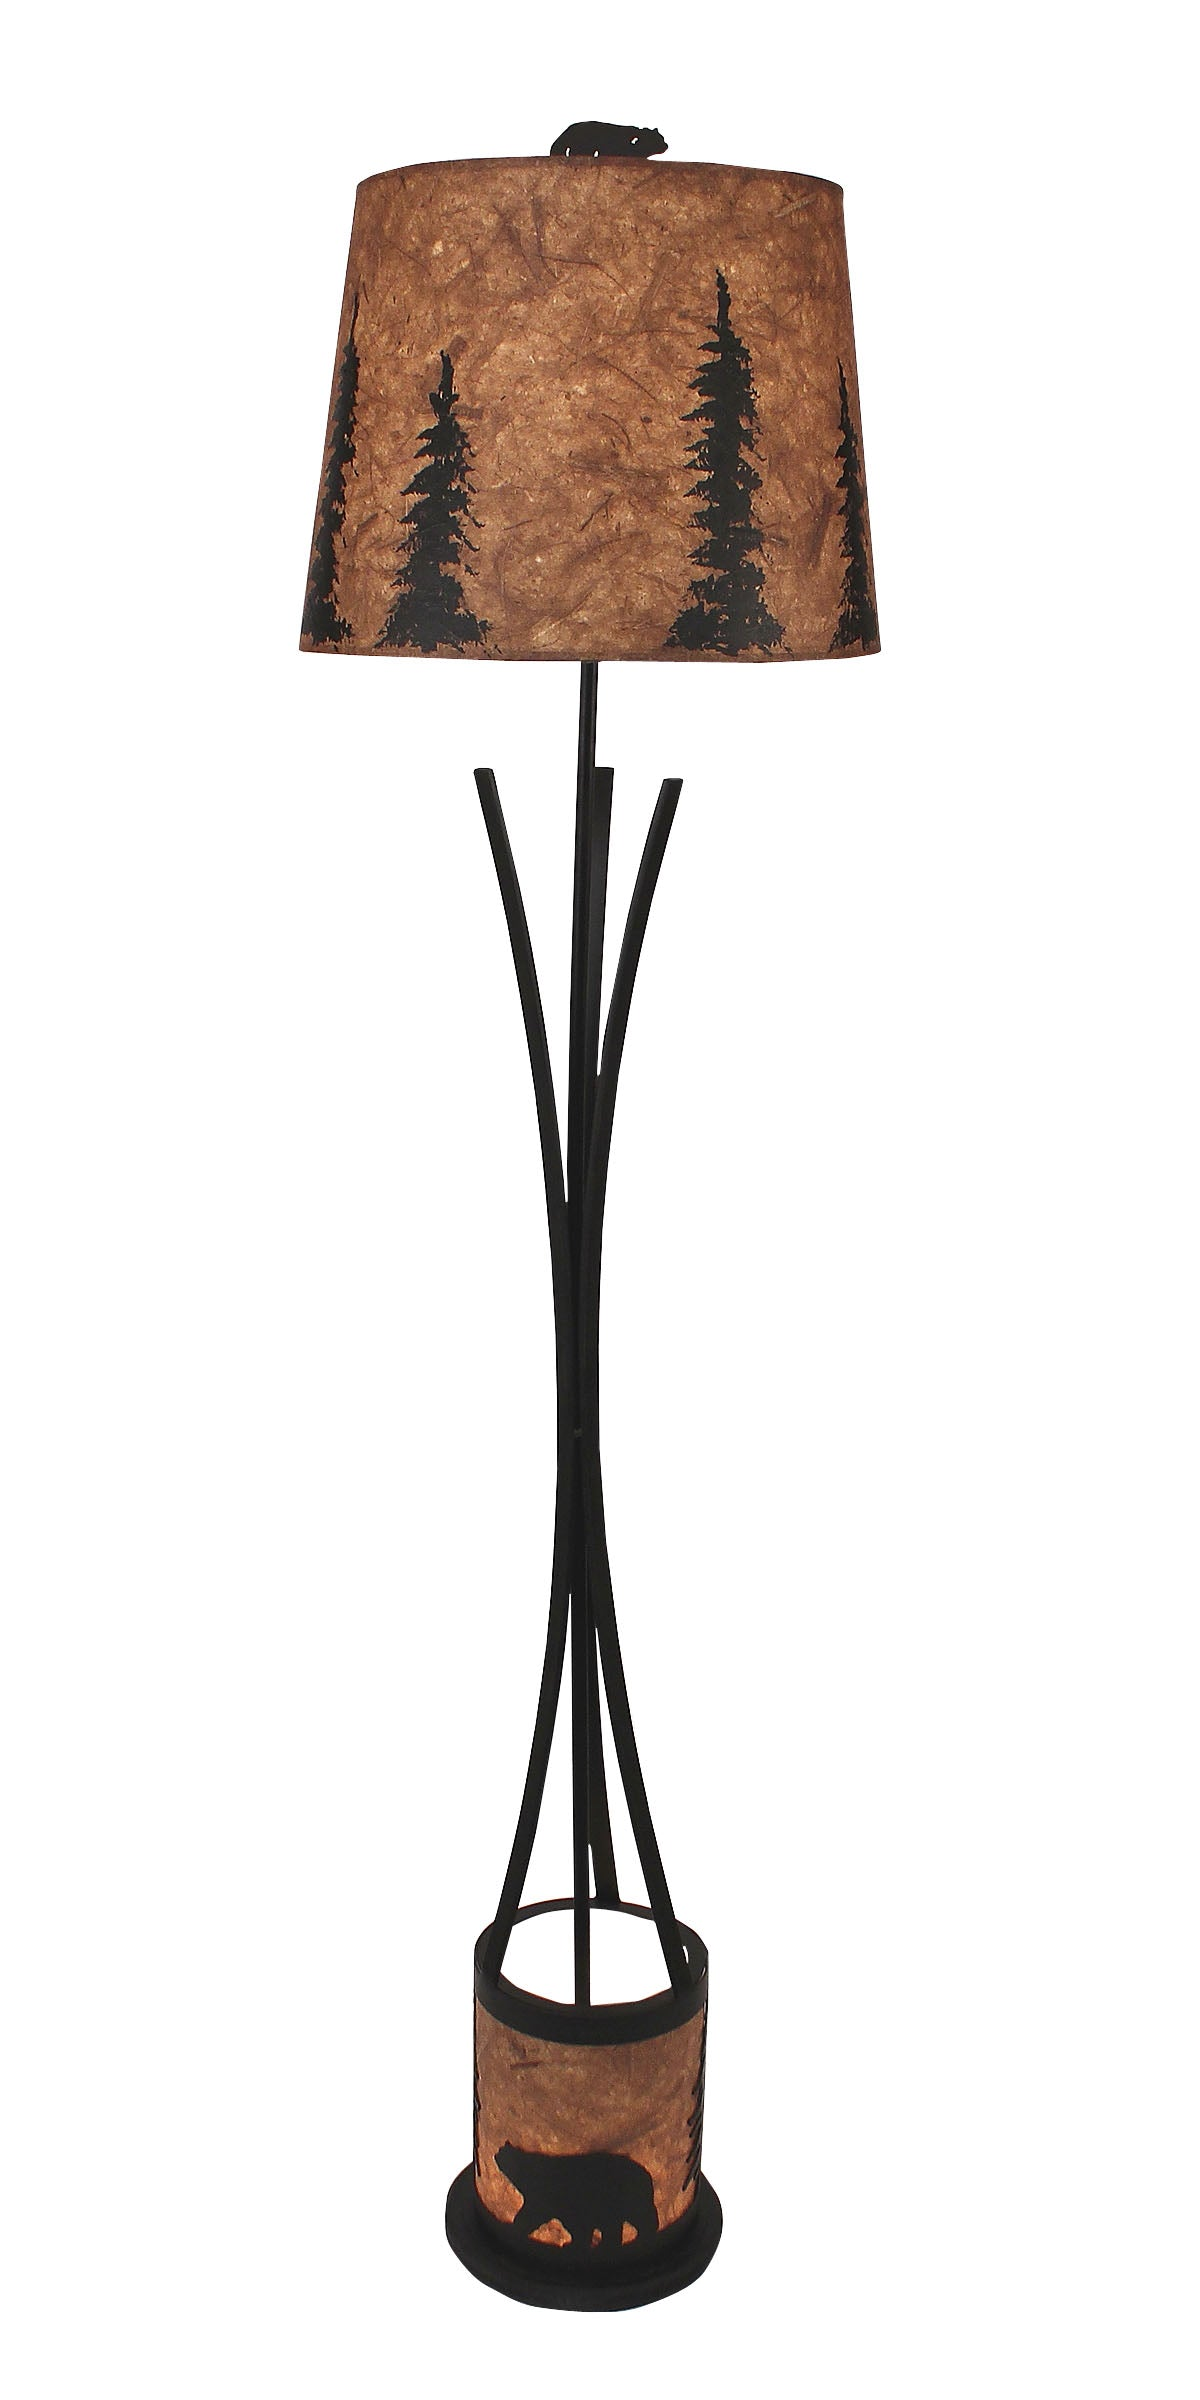 Flat Bar Floor Lamp with Bear Scene Night Light - Coast Lamp Shop